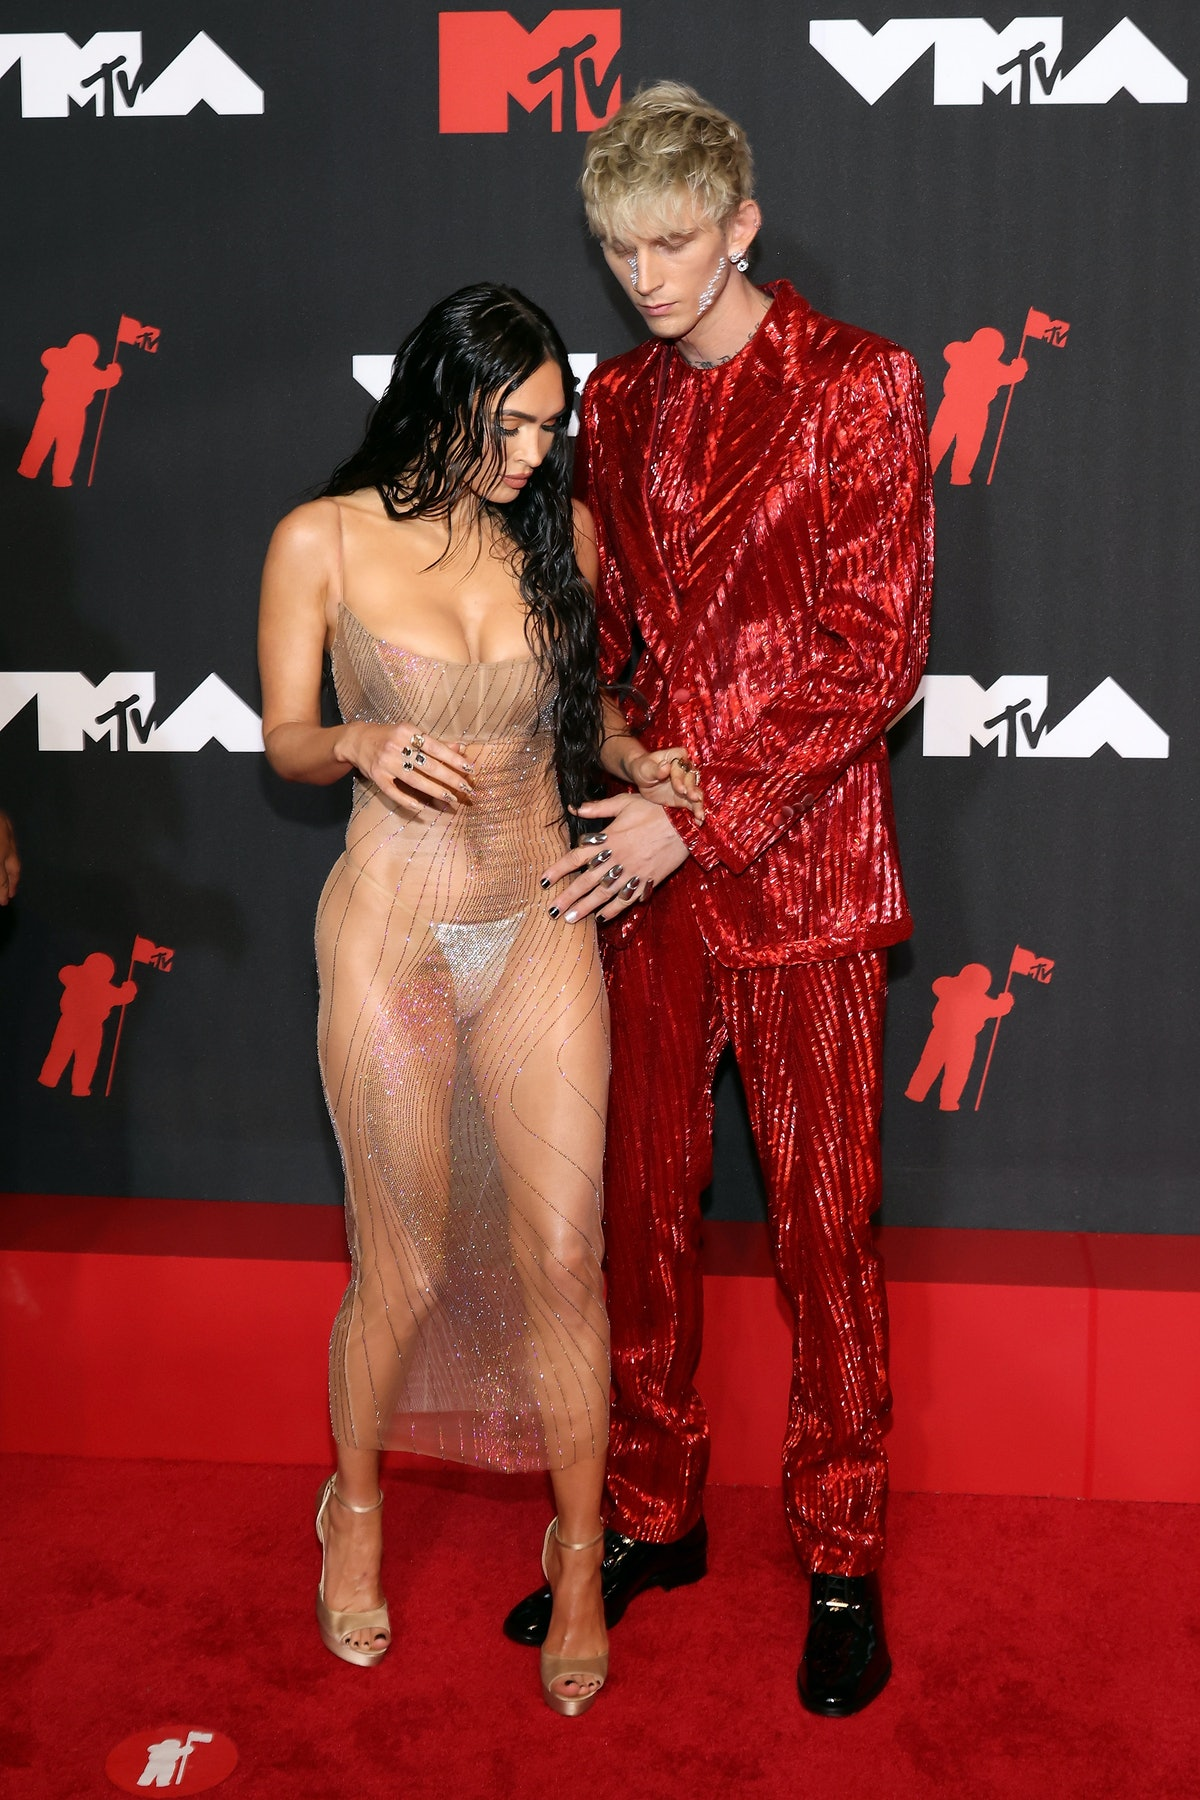 Megan Fox and Machine Gun Kelly's VMAs body language might have been too posed.